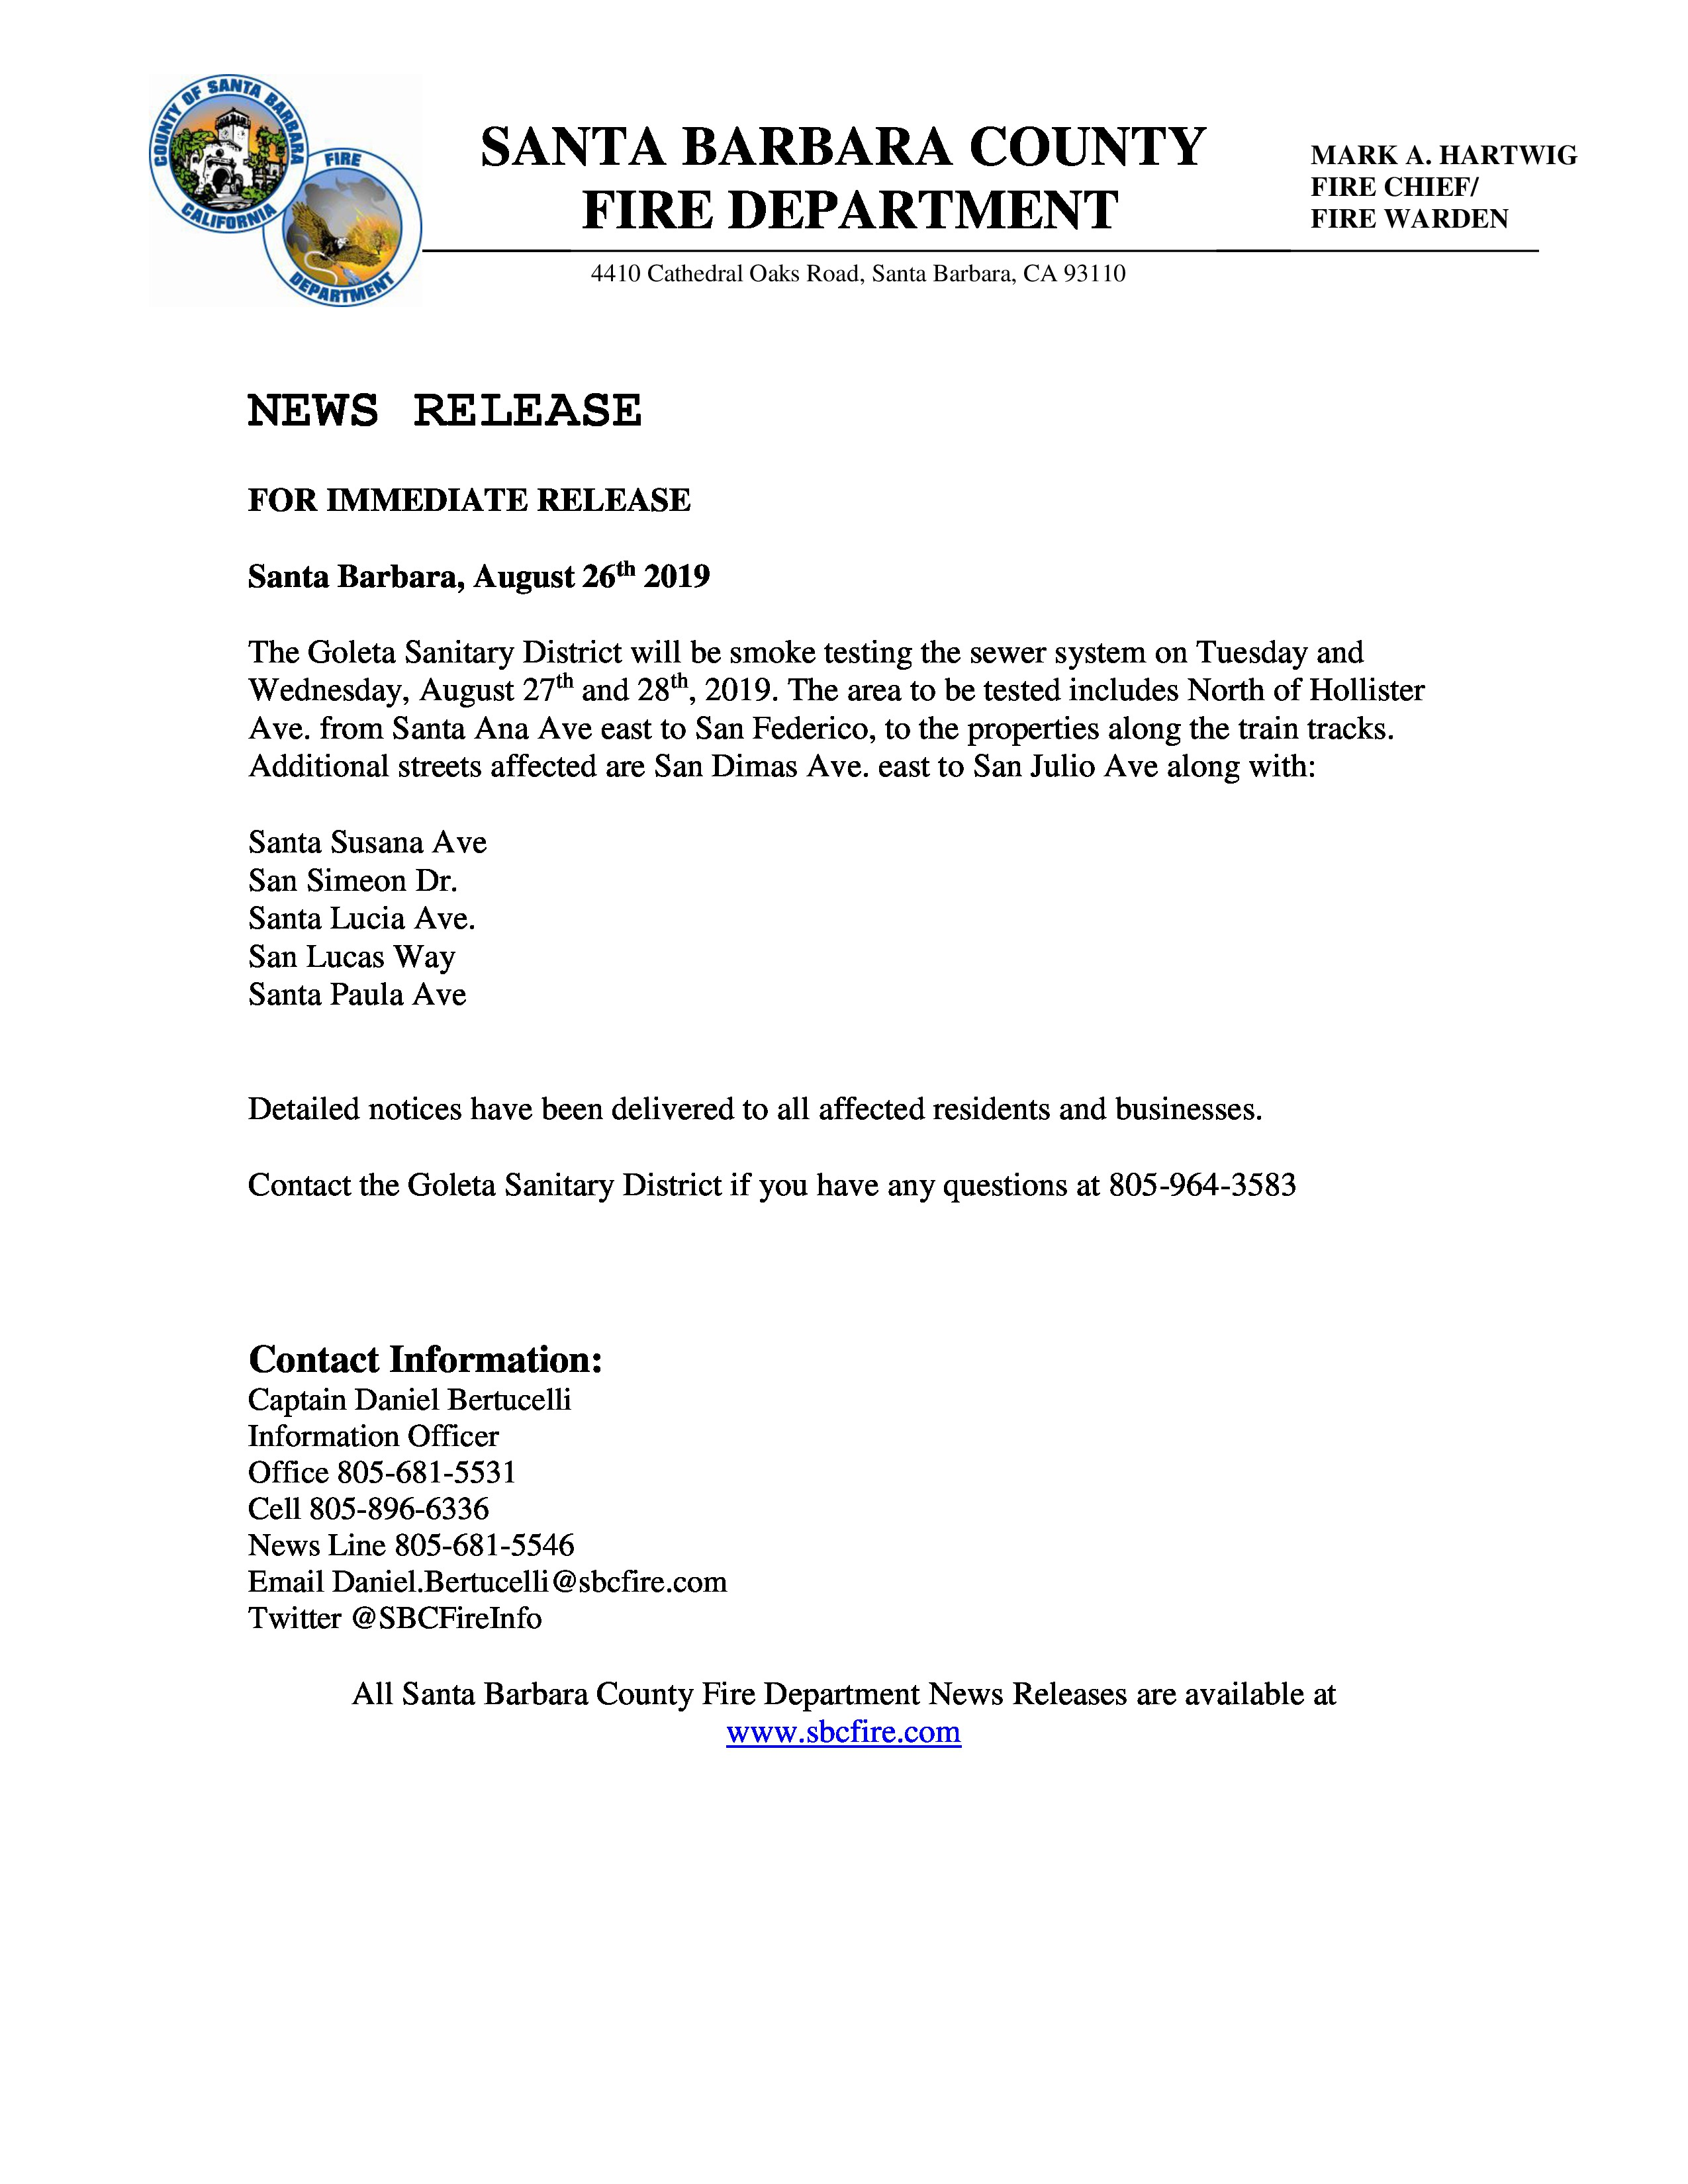 Sewer Smoke Test News Release